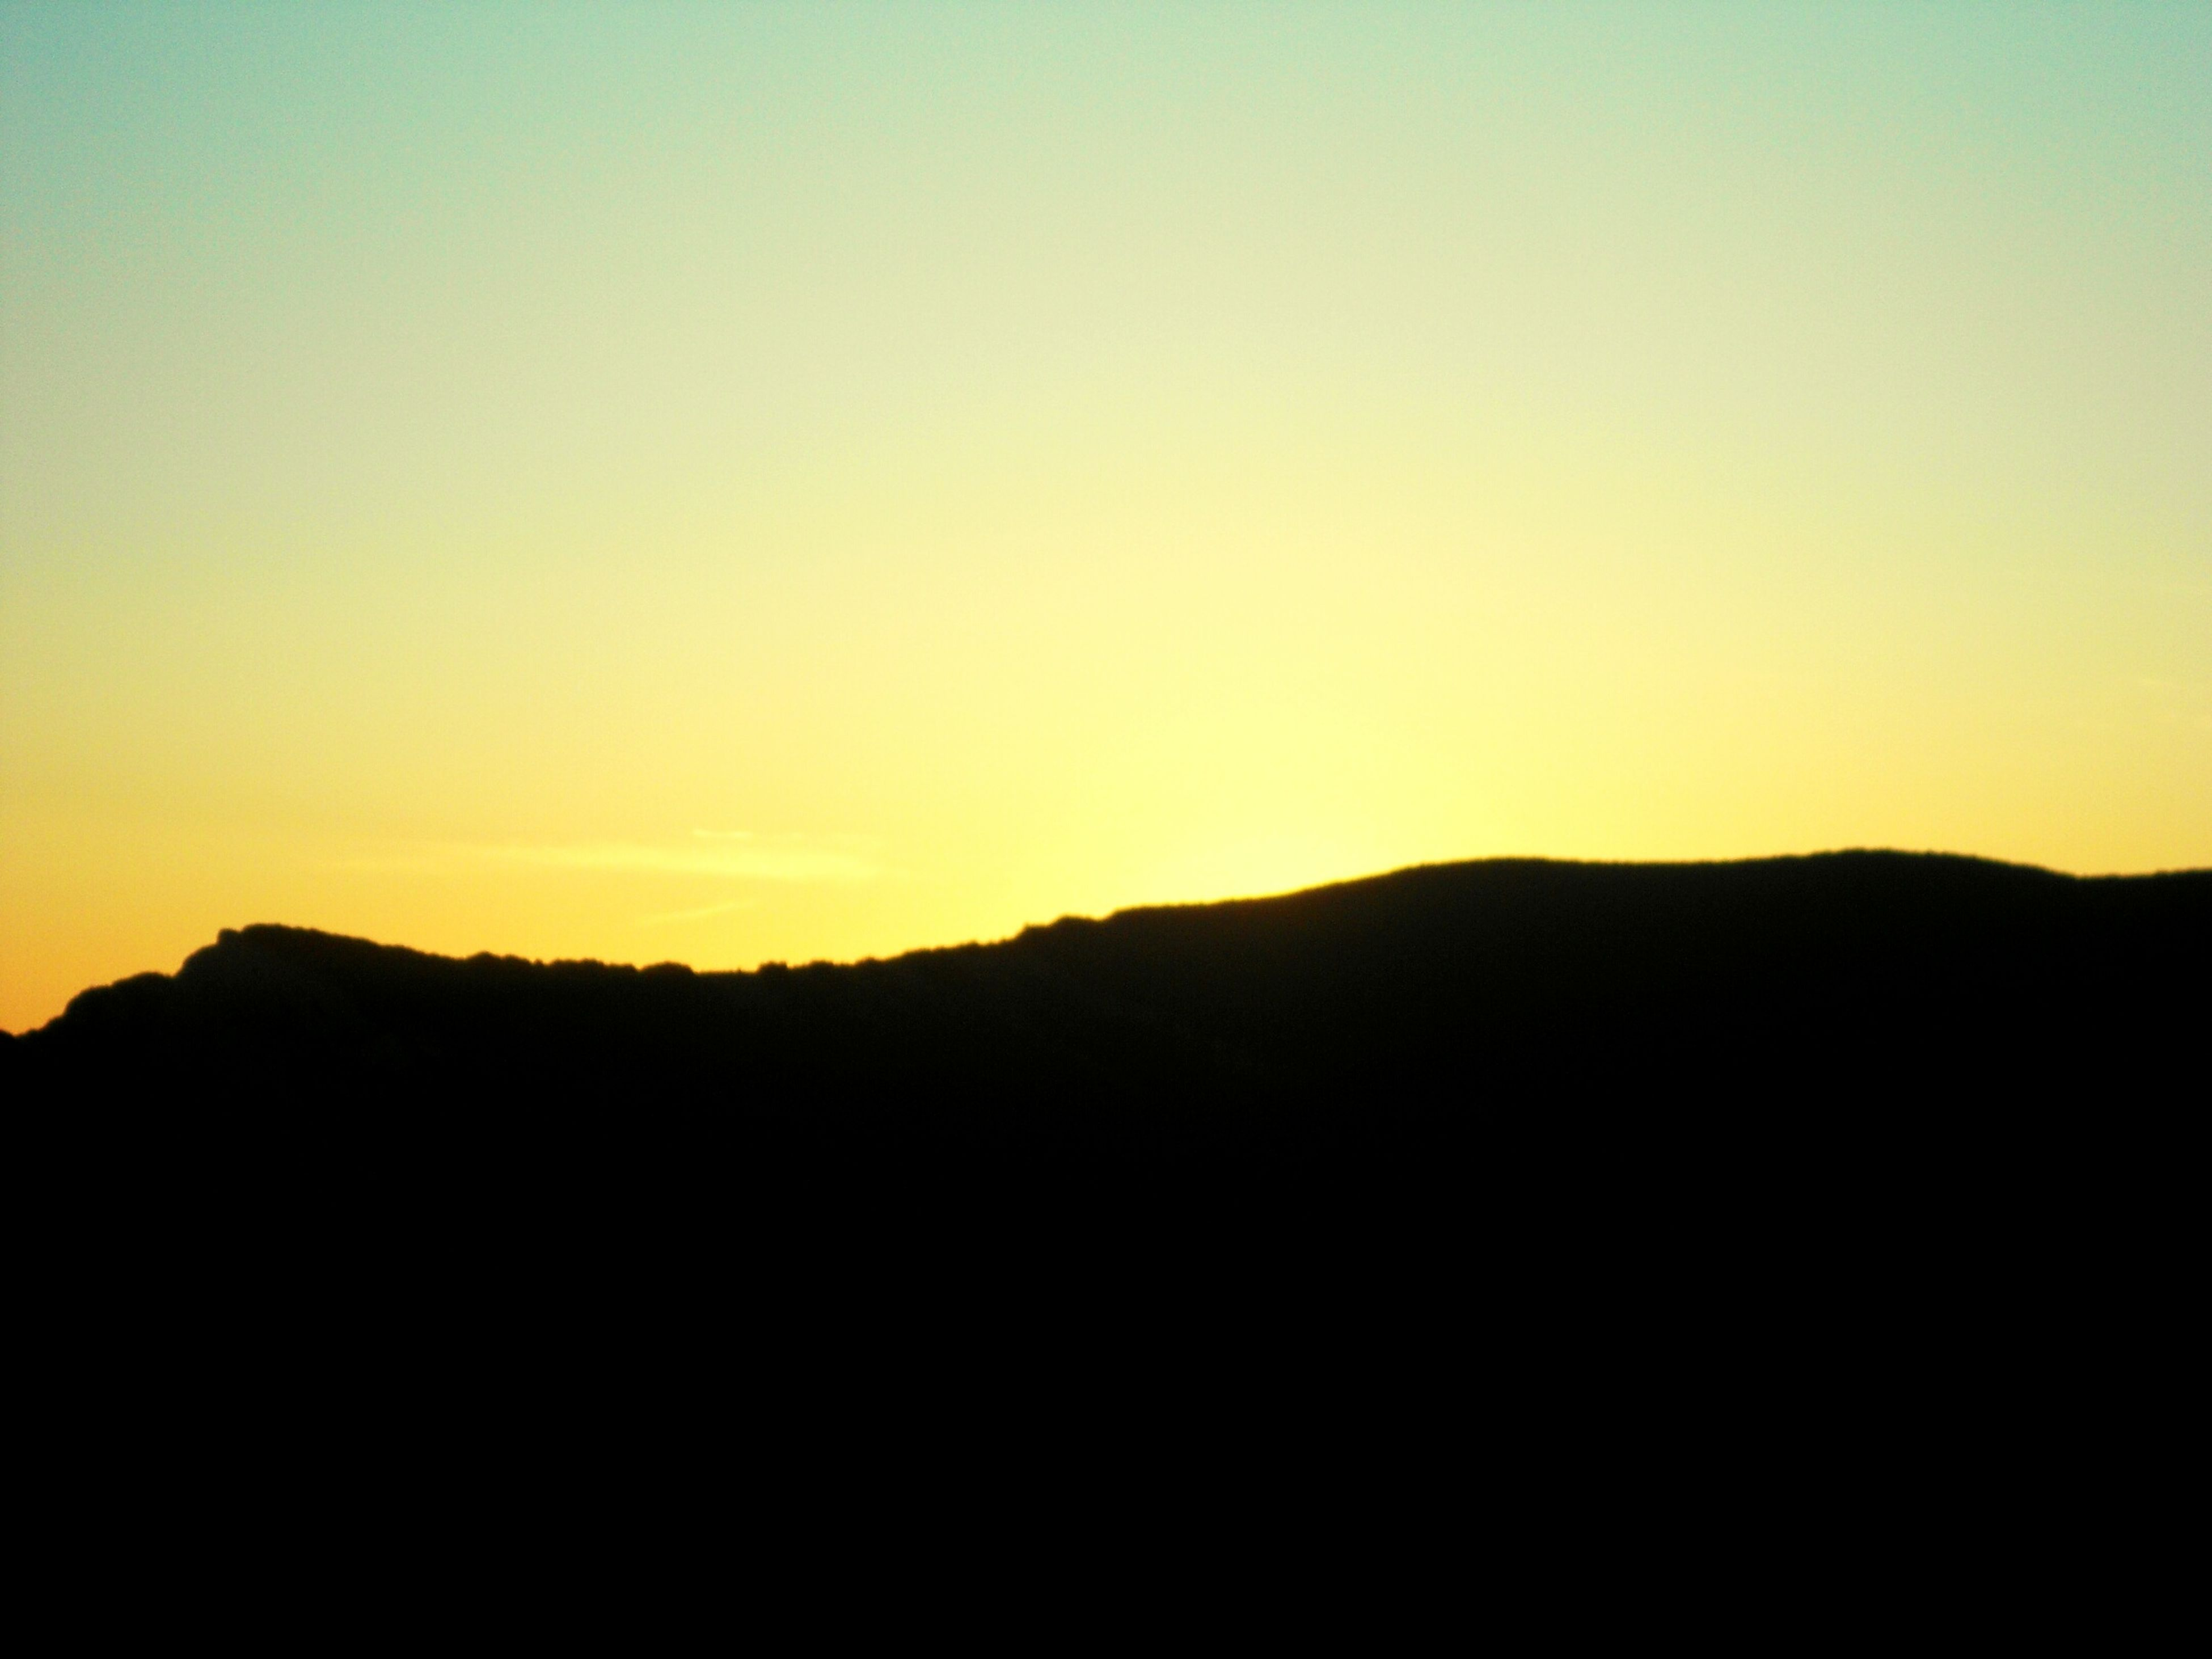 copy space, silhouette, sunset, clear sky, tranquil scene, scenics, tranquility, mountain, beauty in nature, nature, idyllic, orange color, landscape, mountain range, dark, dusk, outdoors, outline, sky, no people